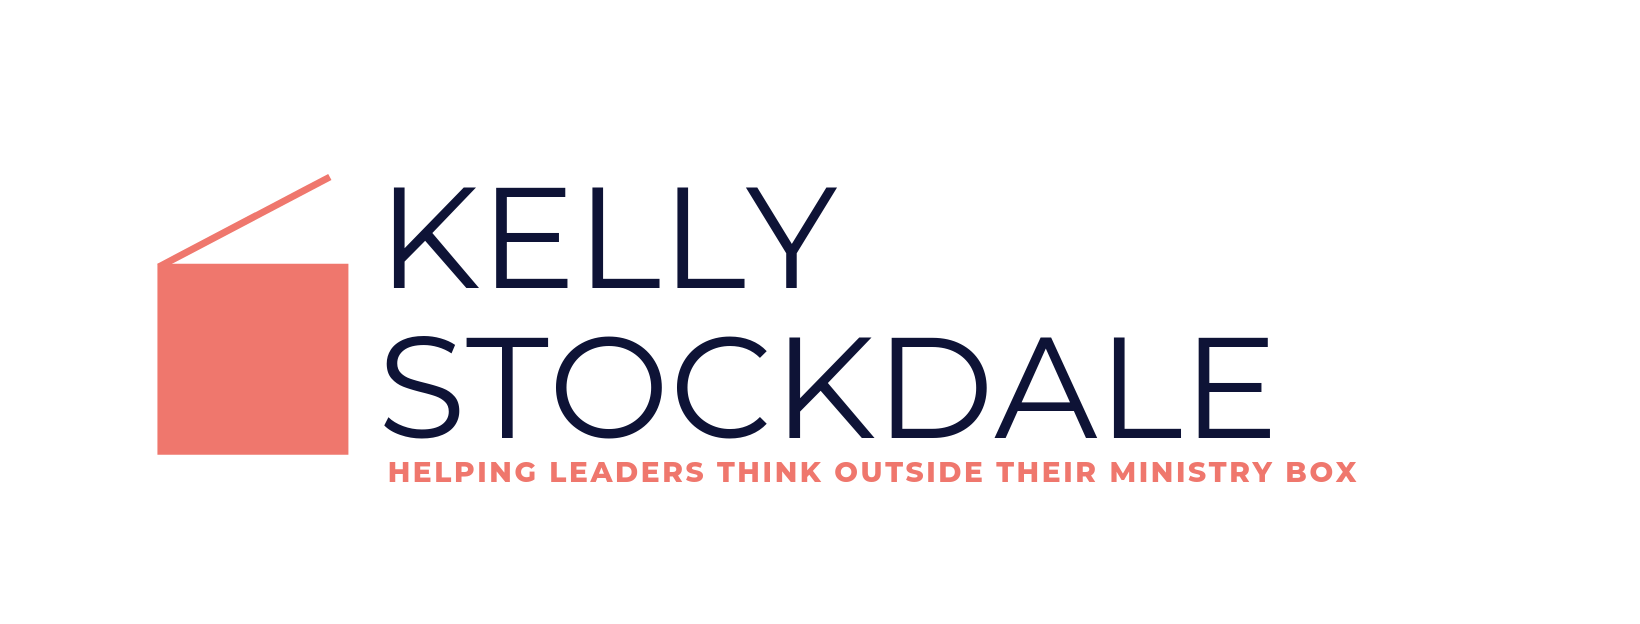 Kelly Stockdale v3.png